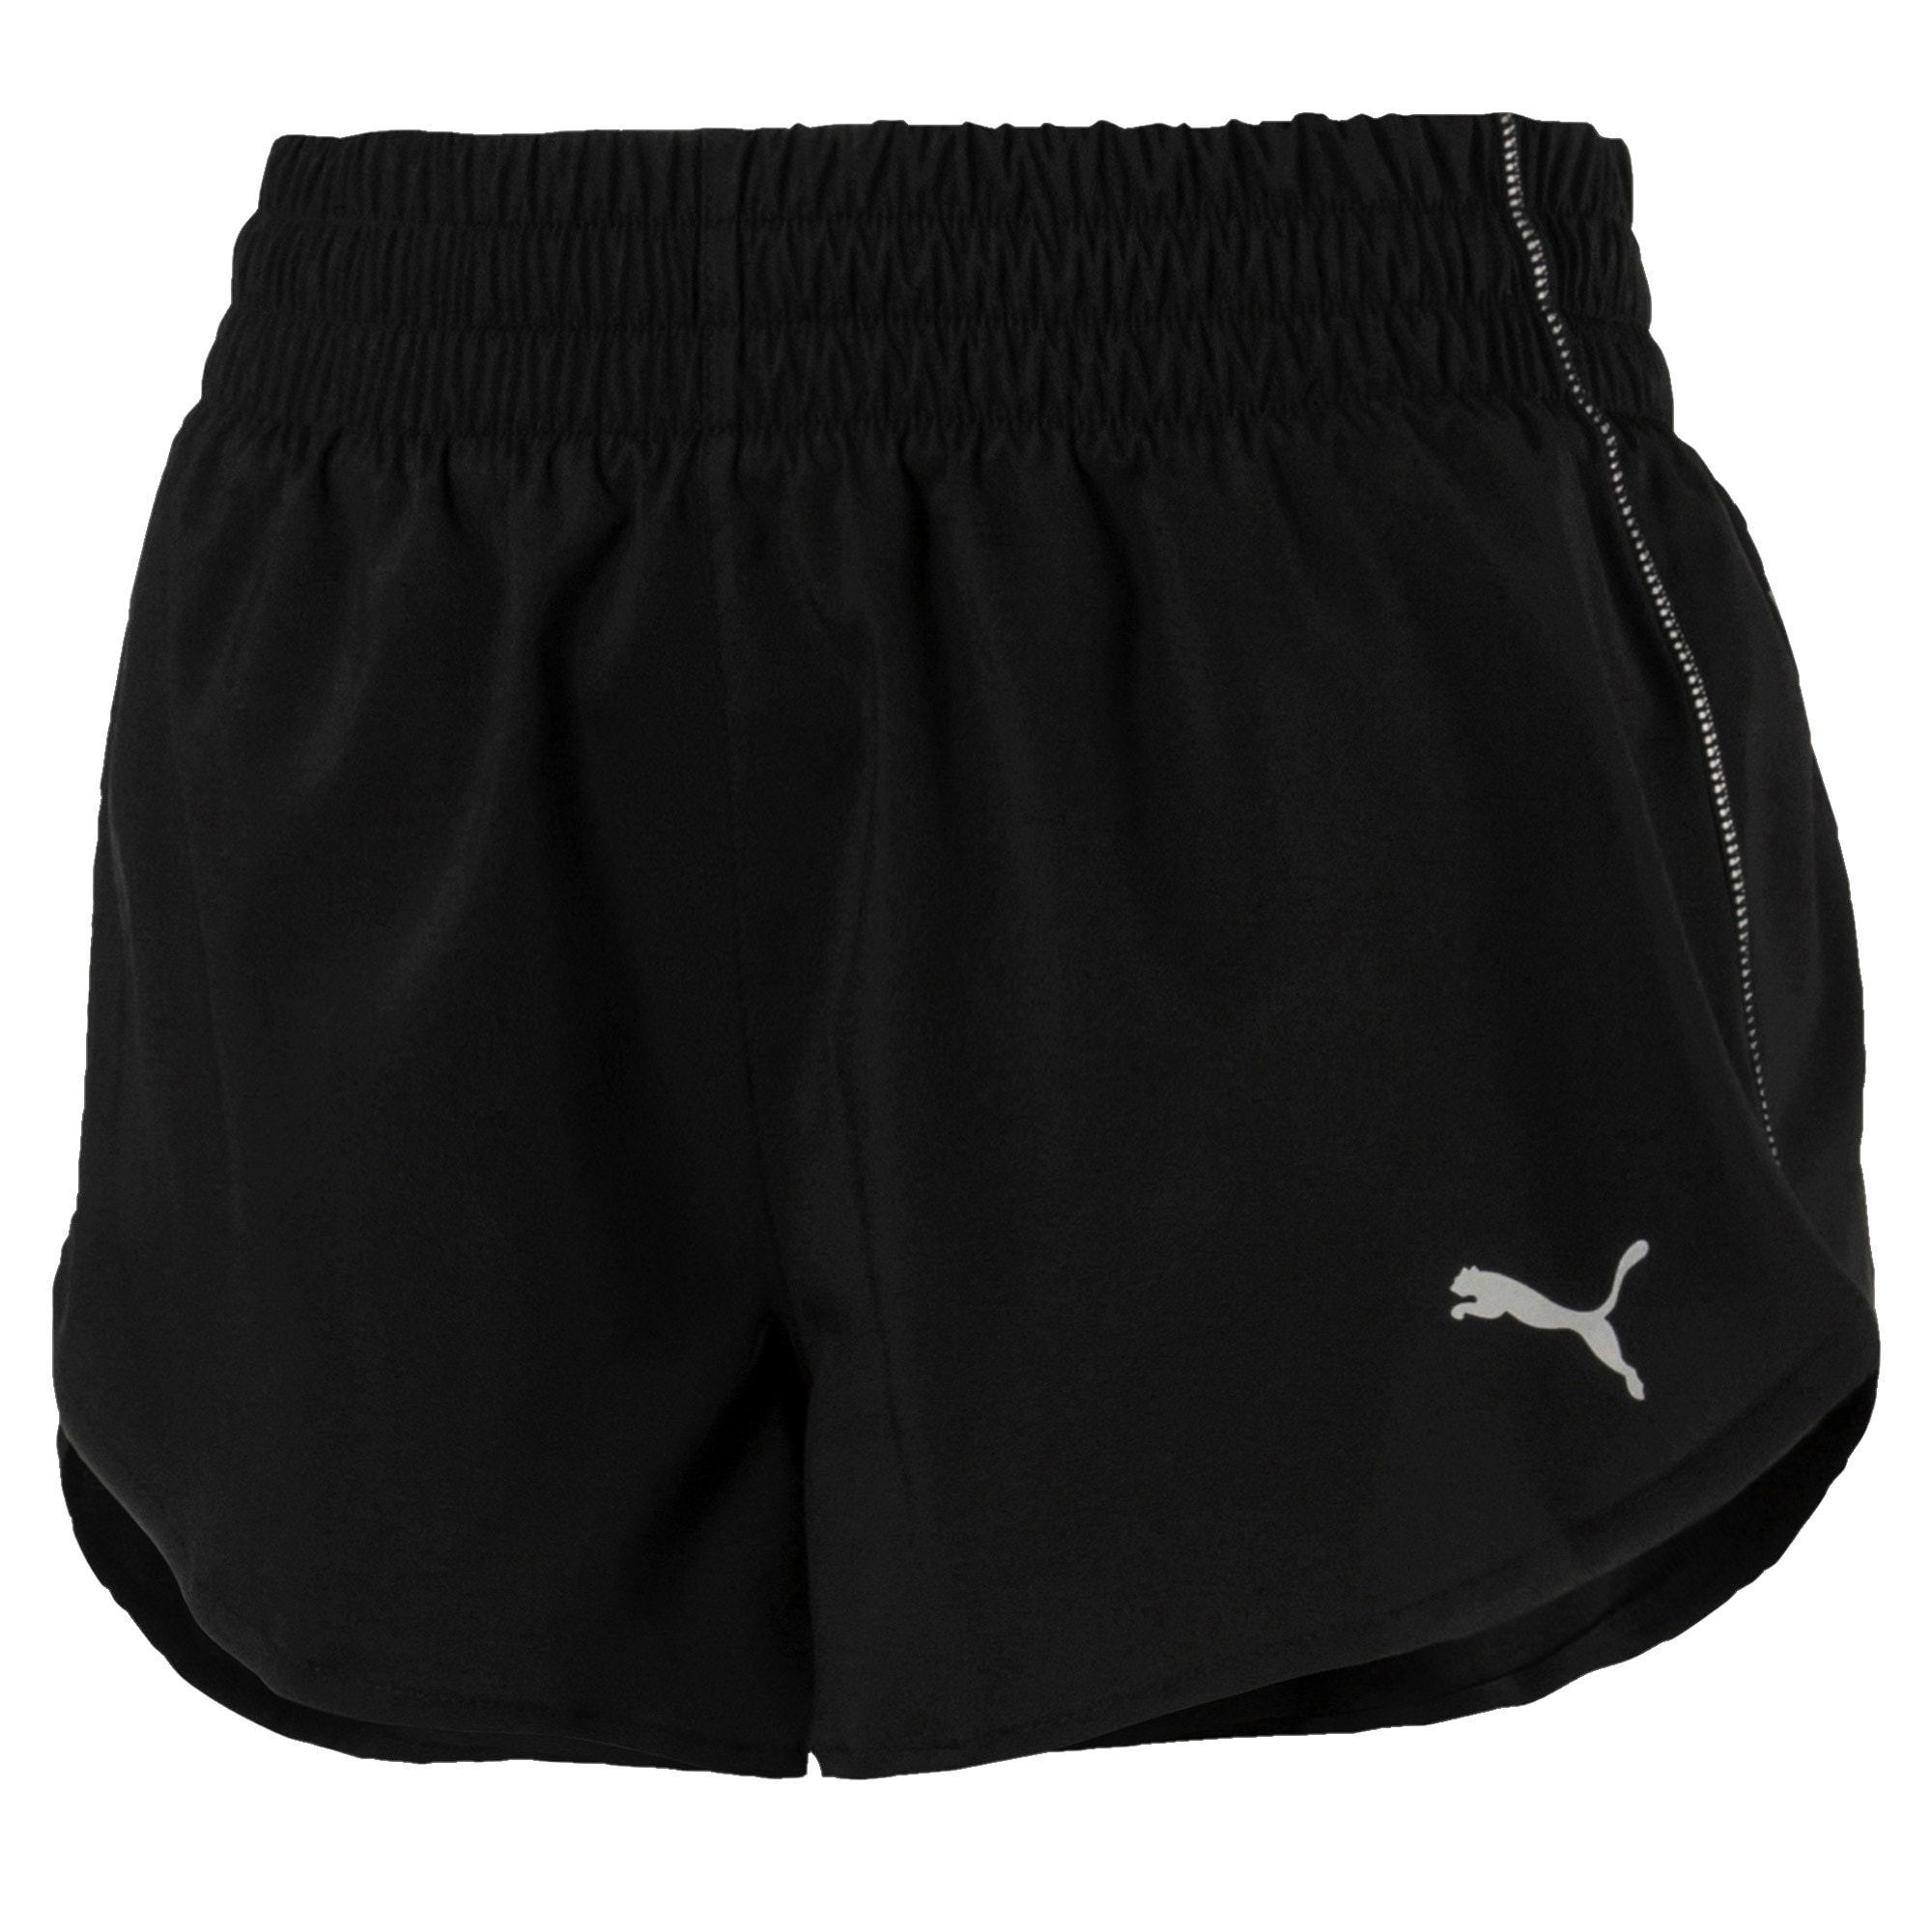 Thumbnail 4 of Keep Up Damen Kurze Shorts, Puma Black, medium